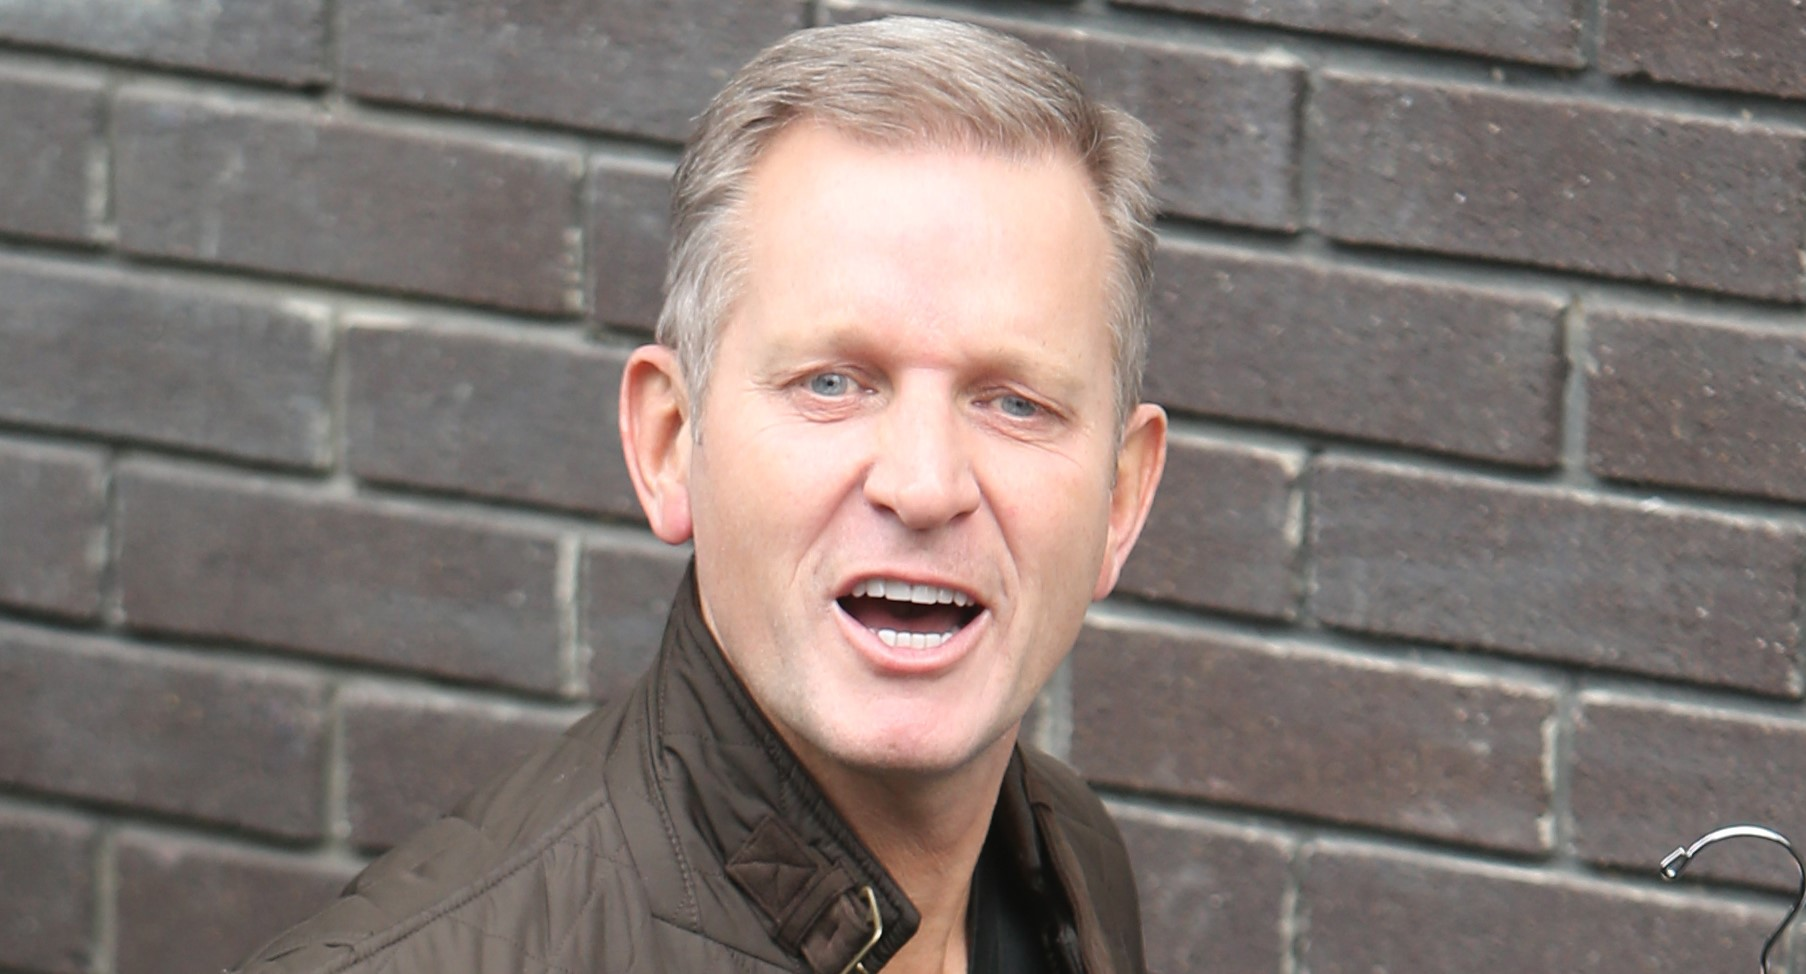 Jeremy Kyle 'set to make dramatic TV return following axe of his show after guest's death'